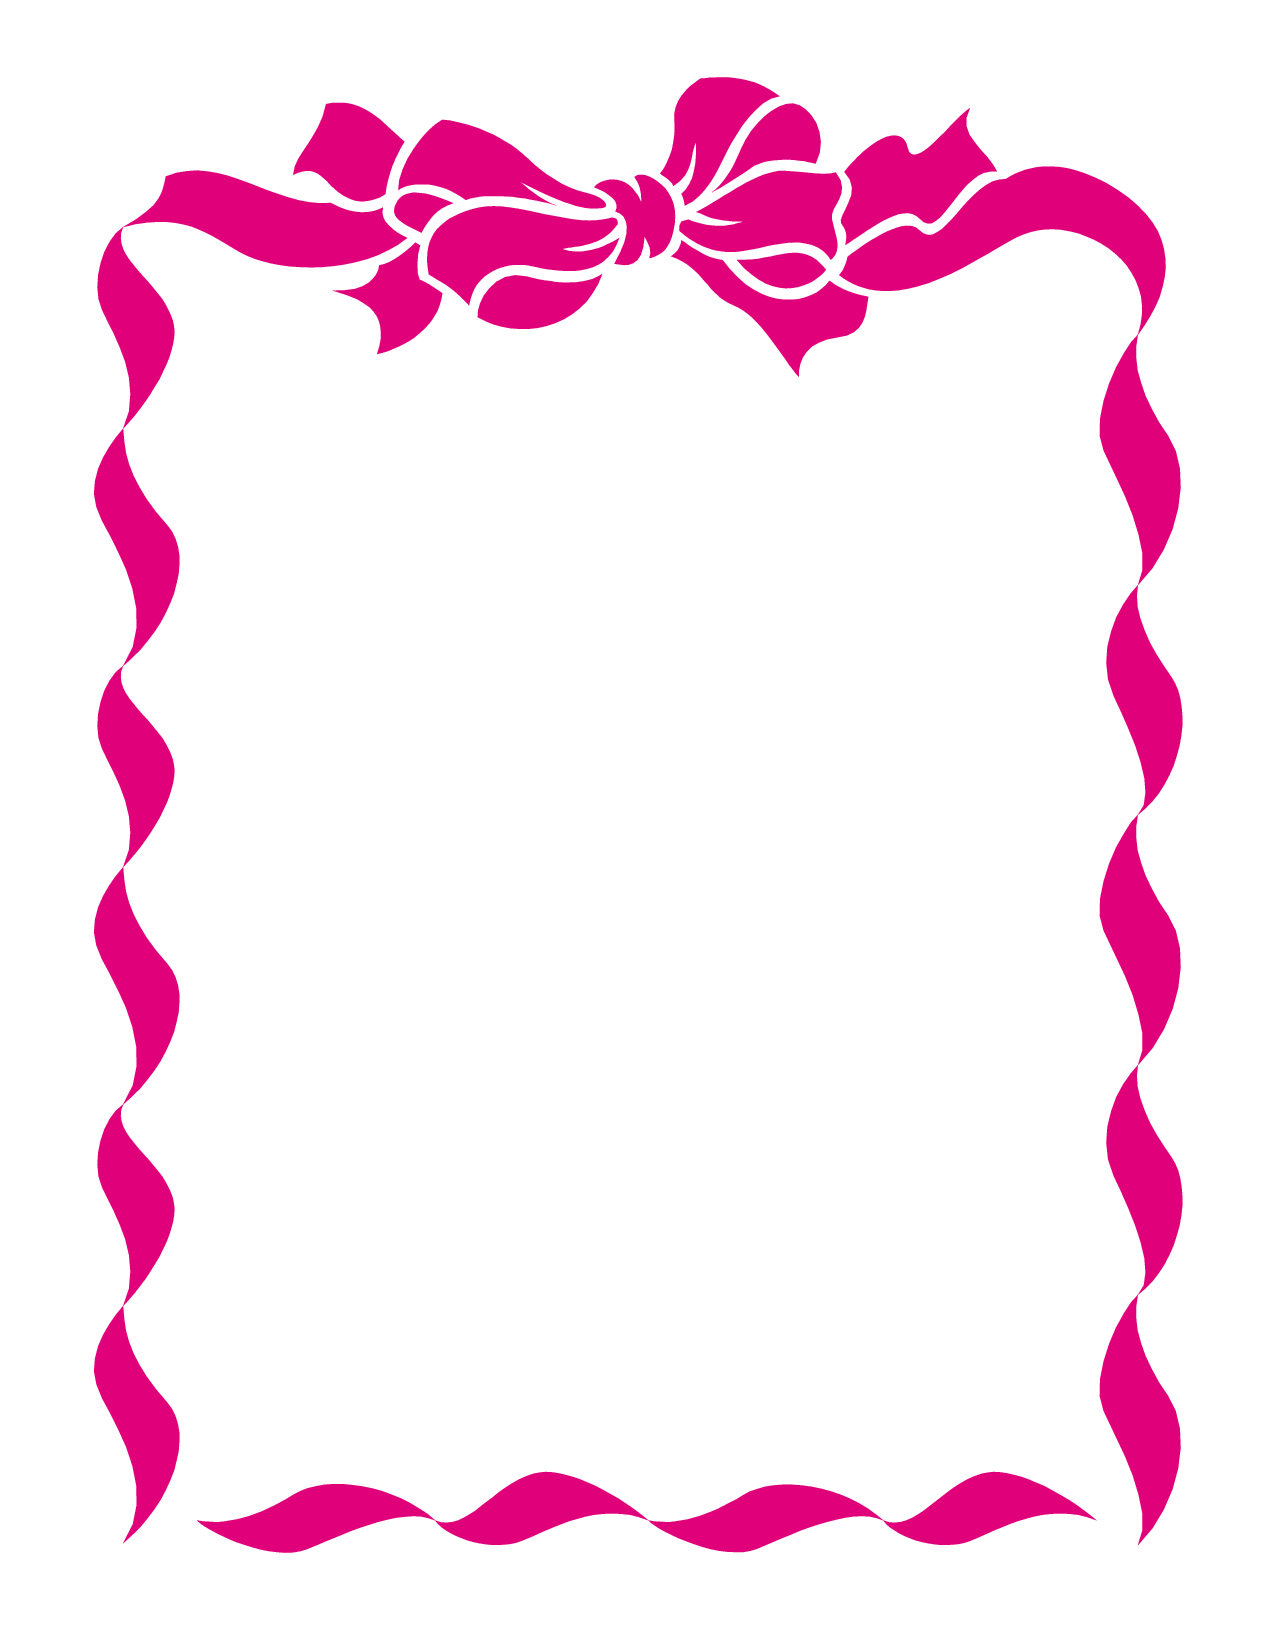 Barbie clipart border Clip Clipart Free Free library